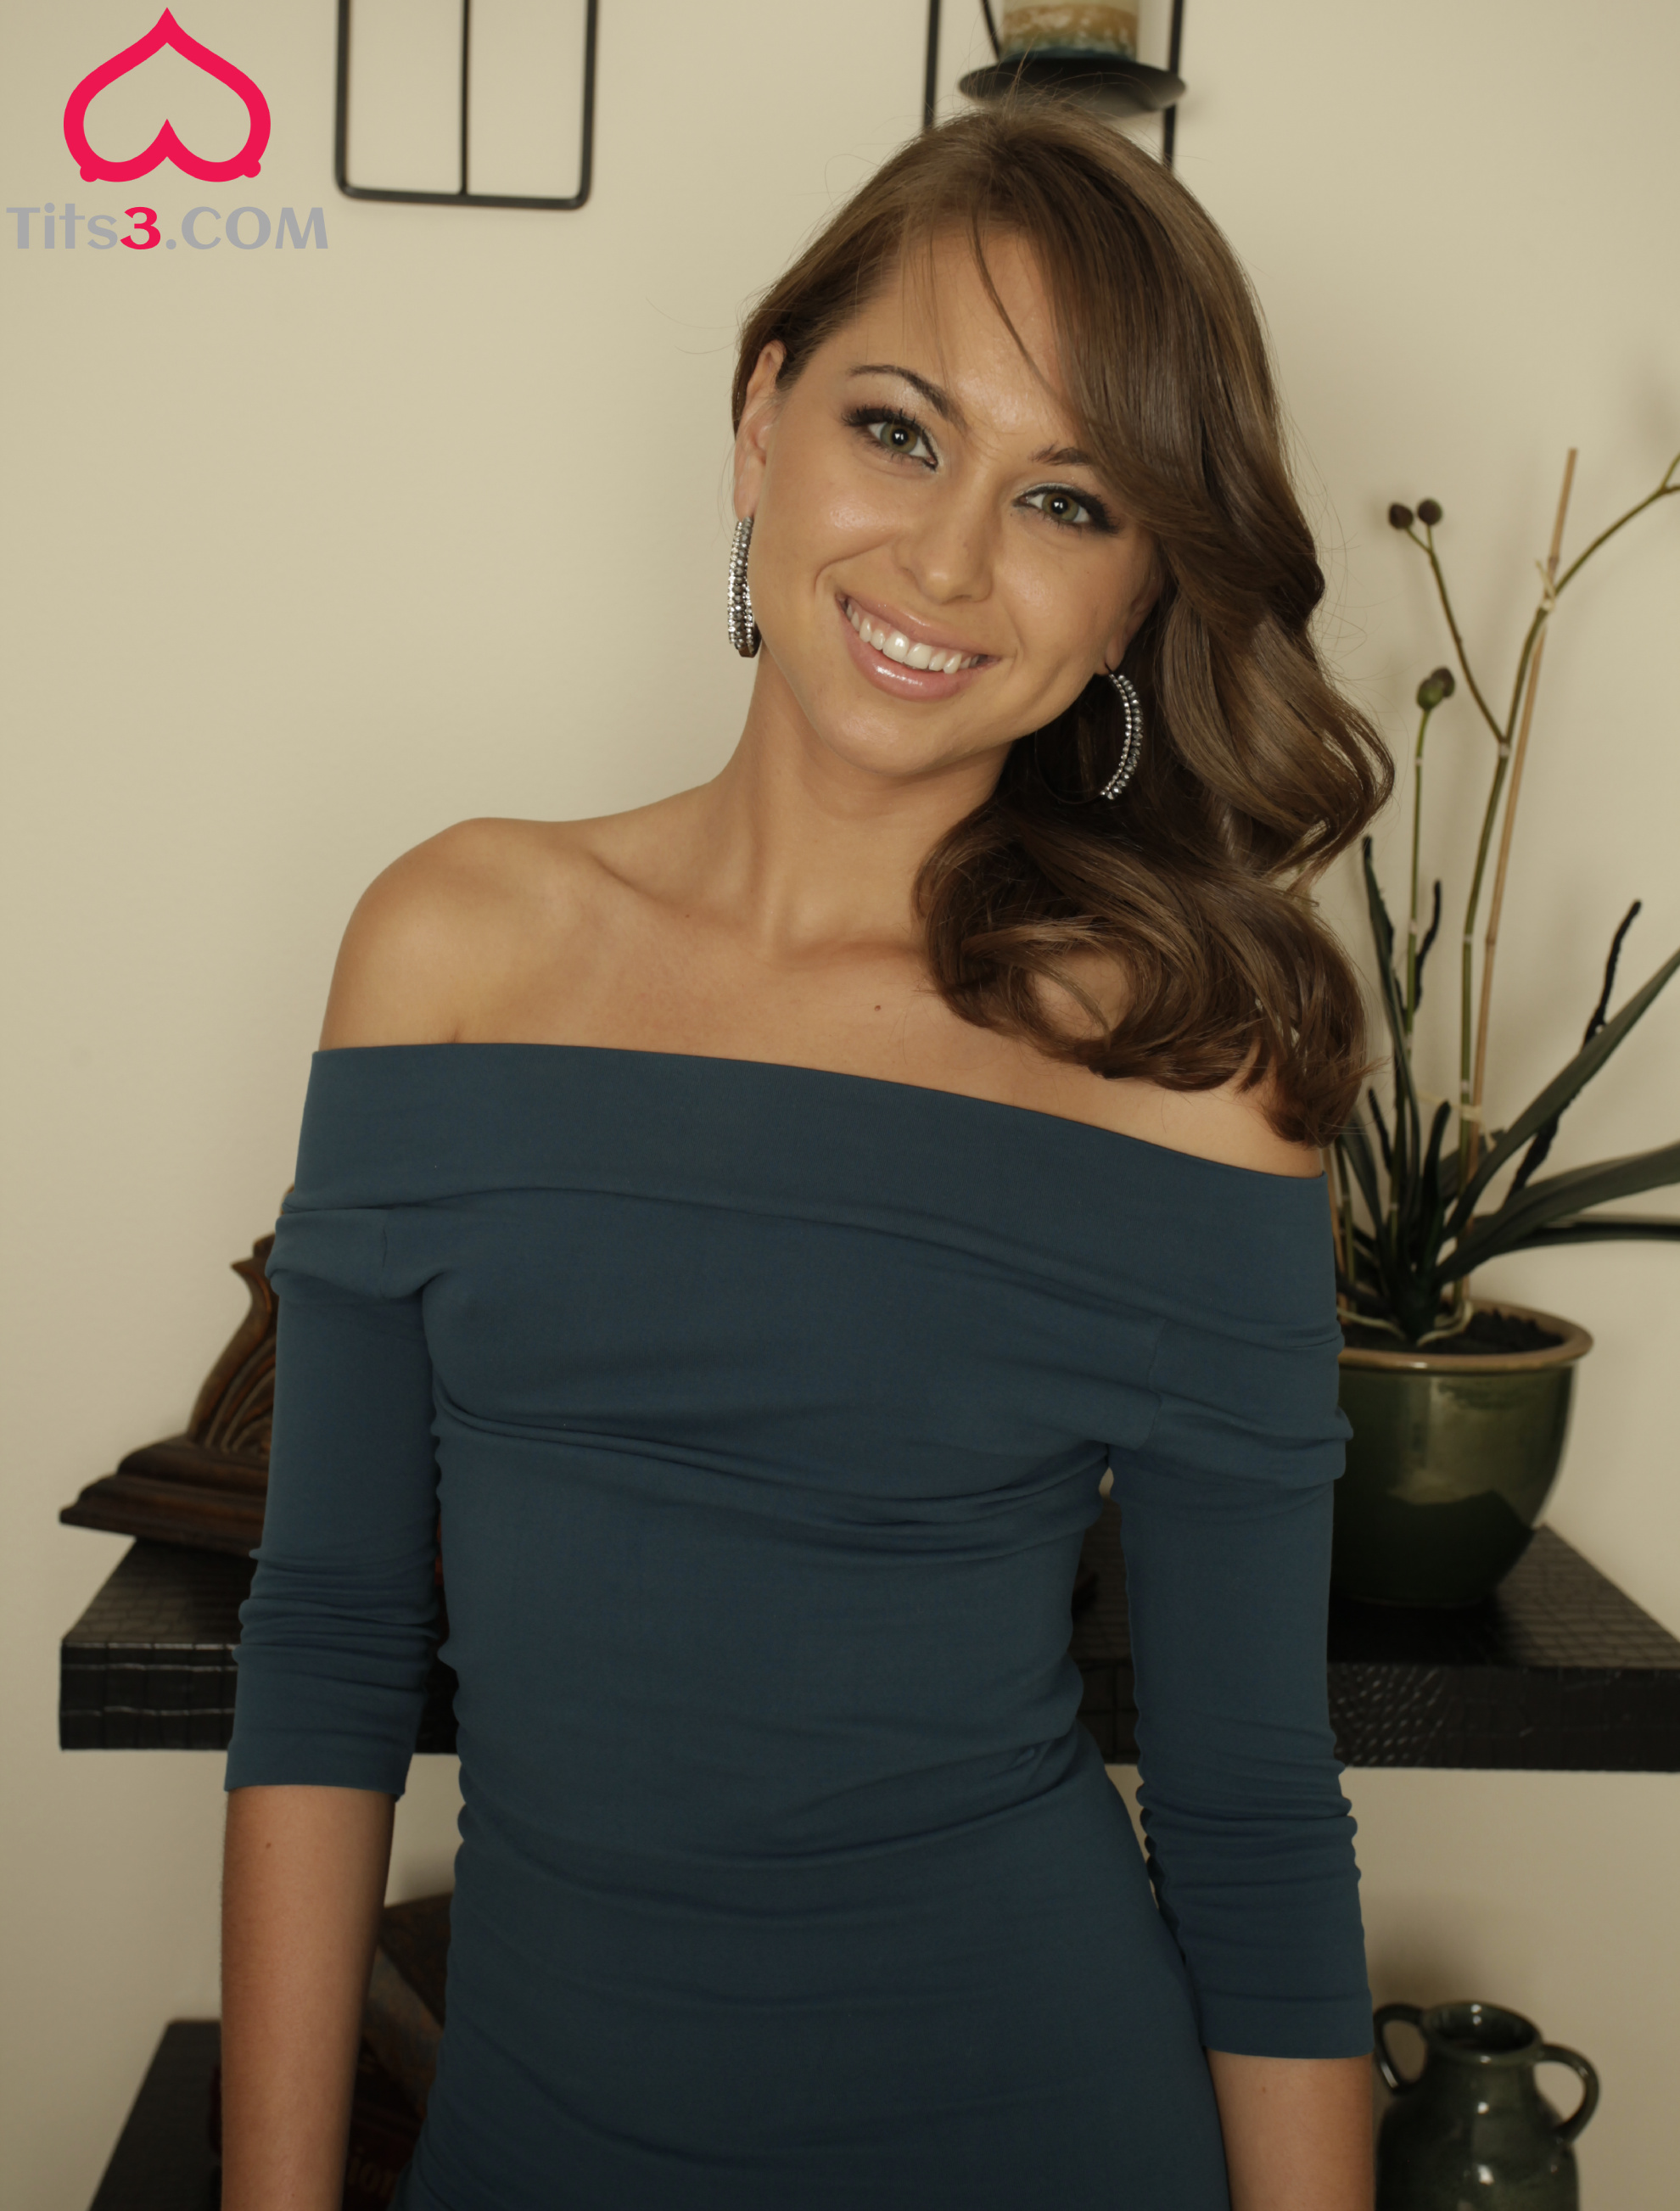 beautiful smile with brown hair